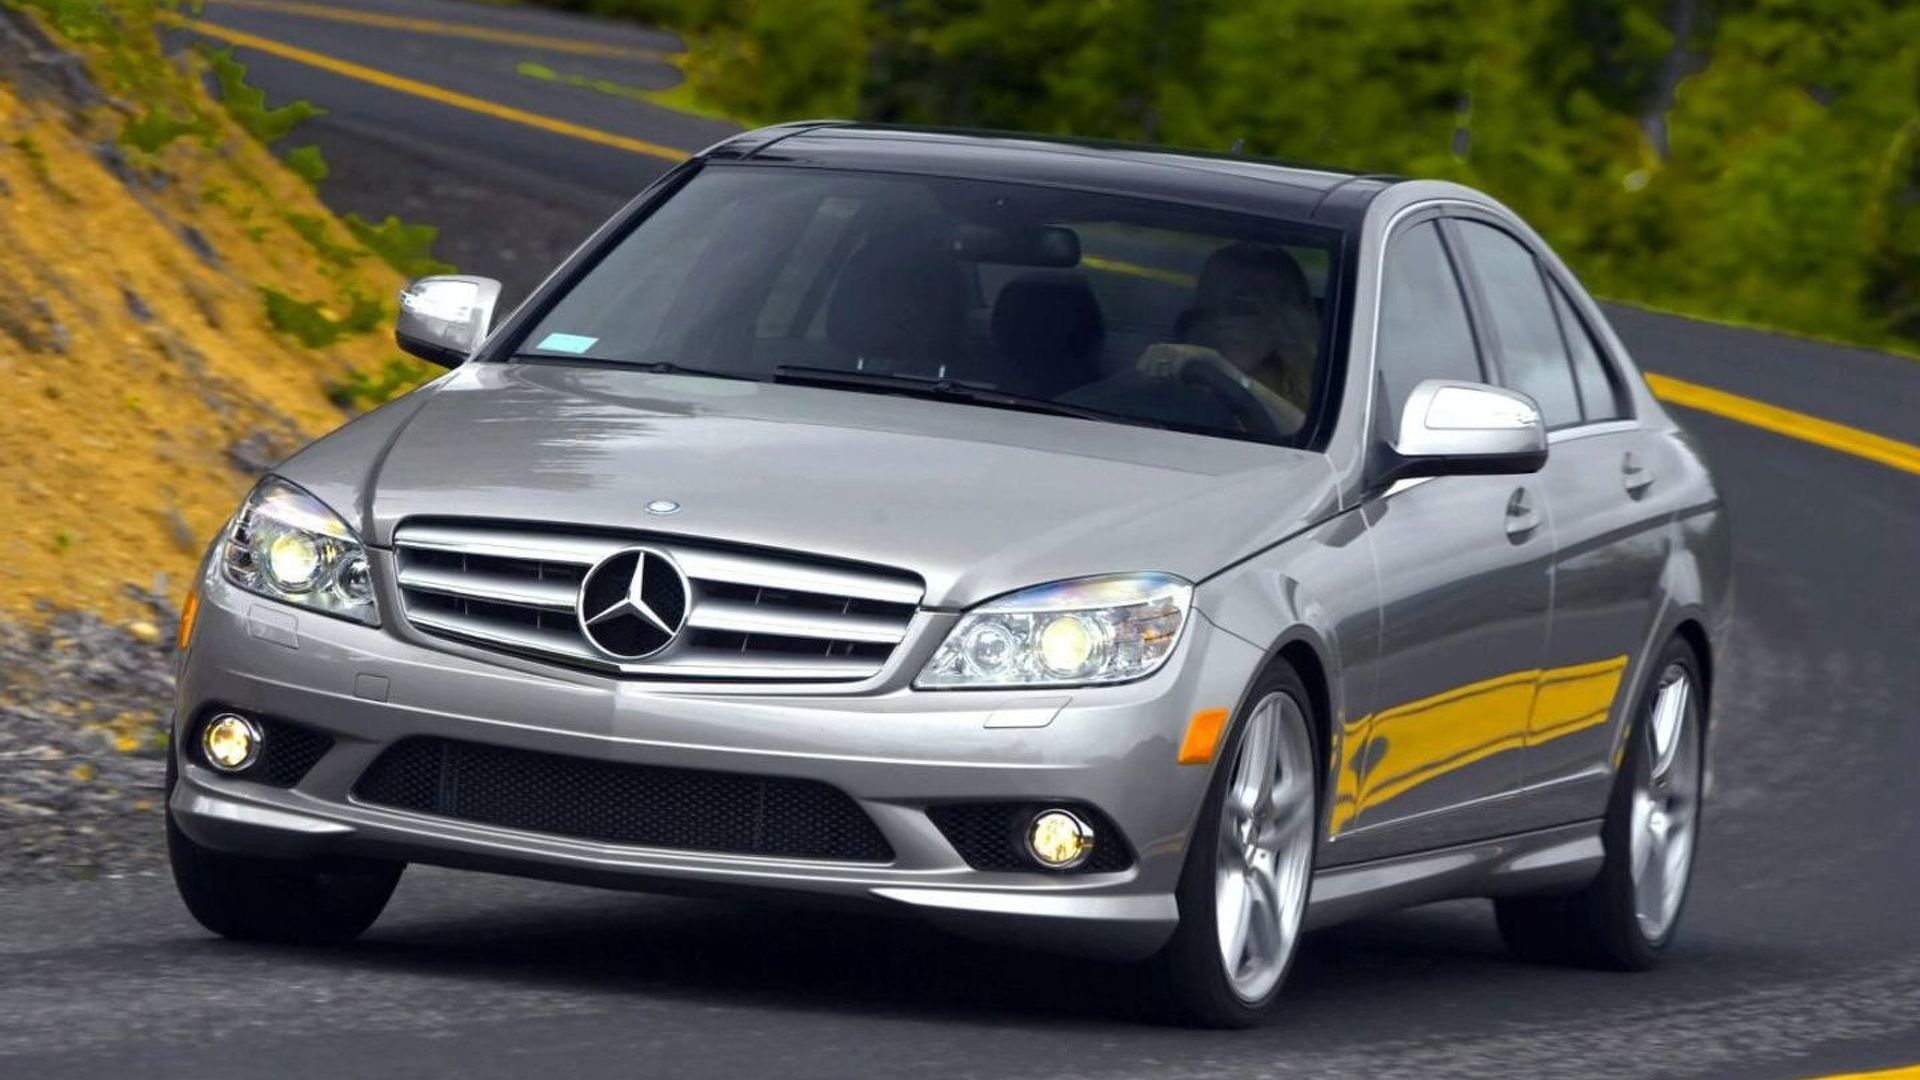 Daimler Confirms Mercedes C-Class U.S. Production in 2014